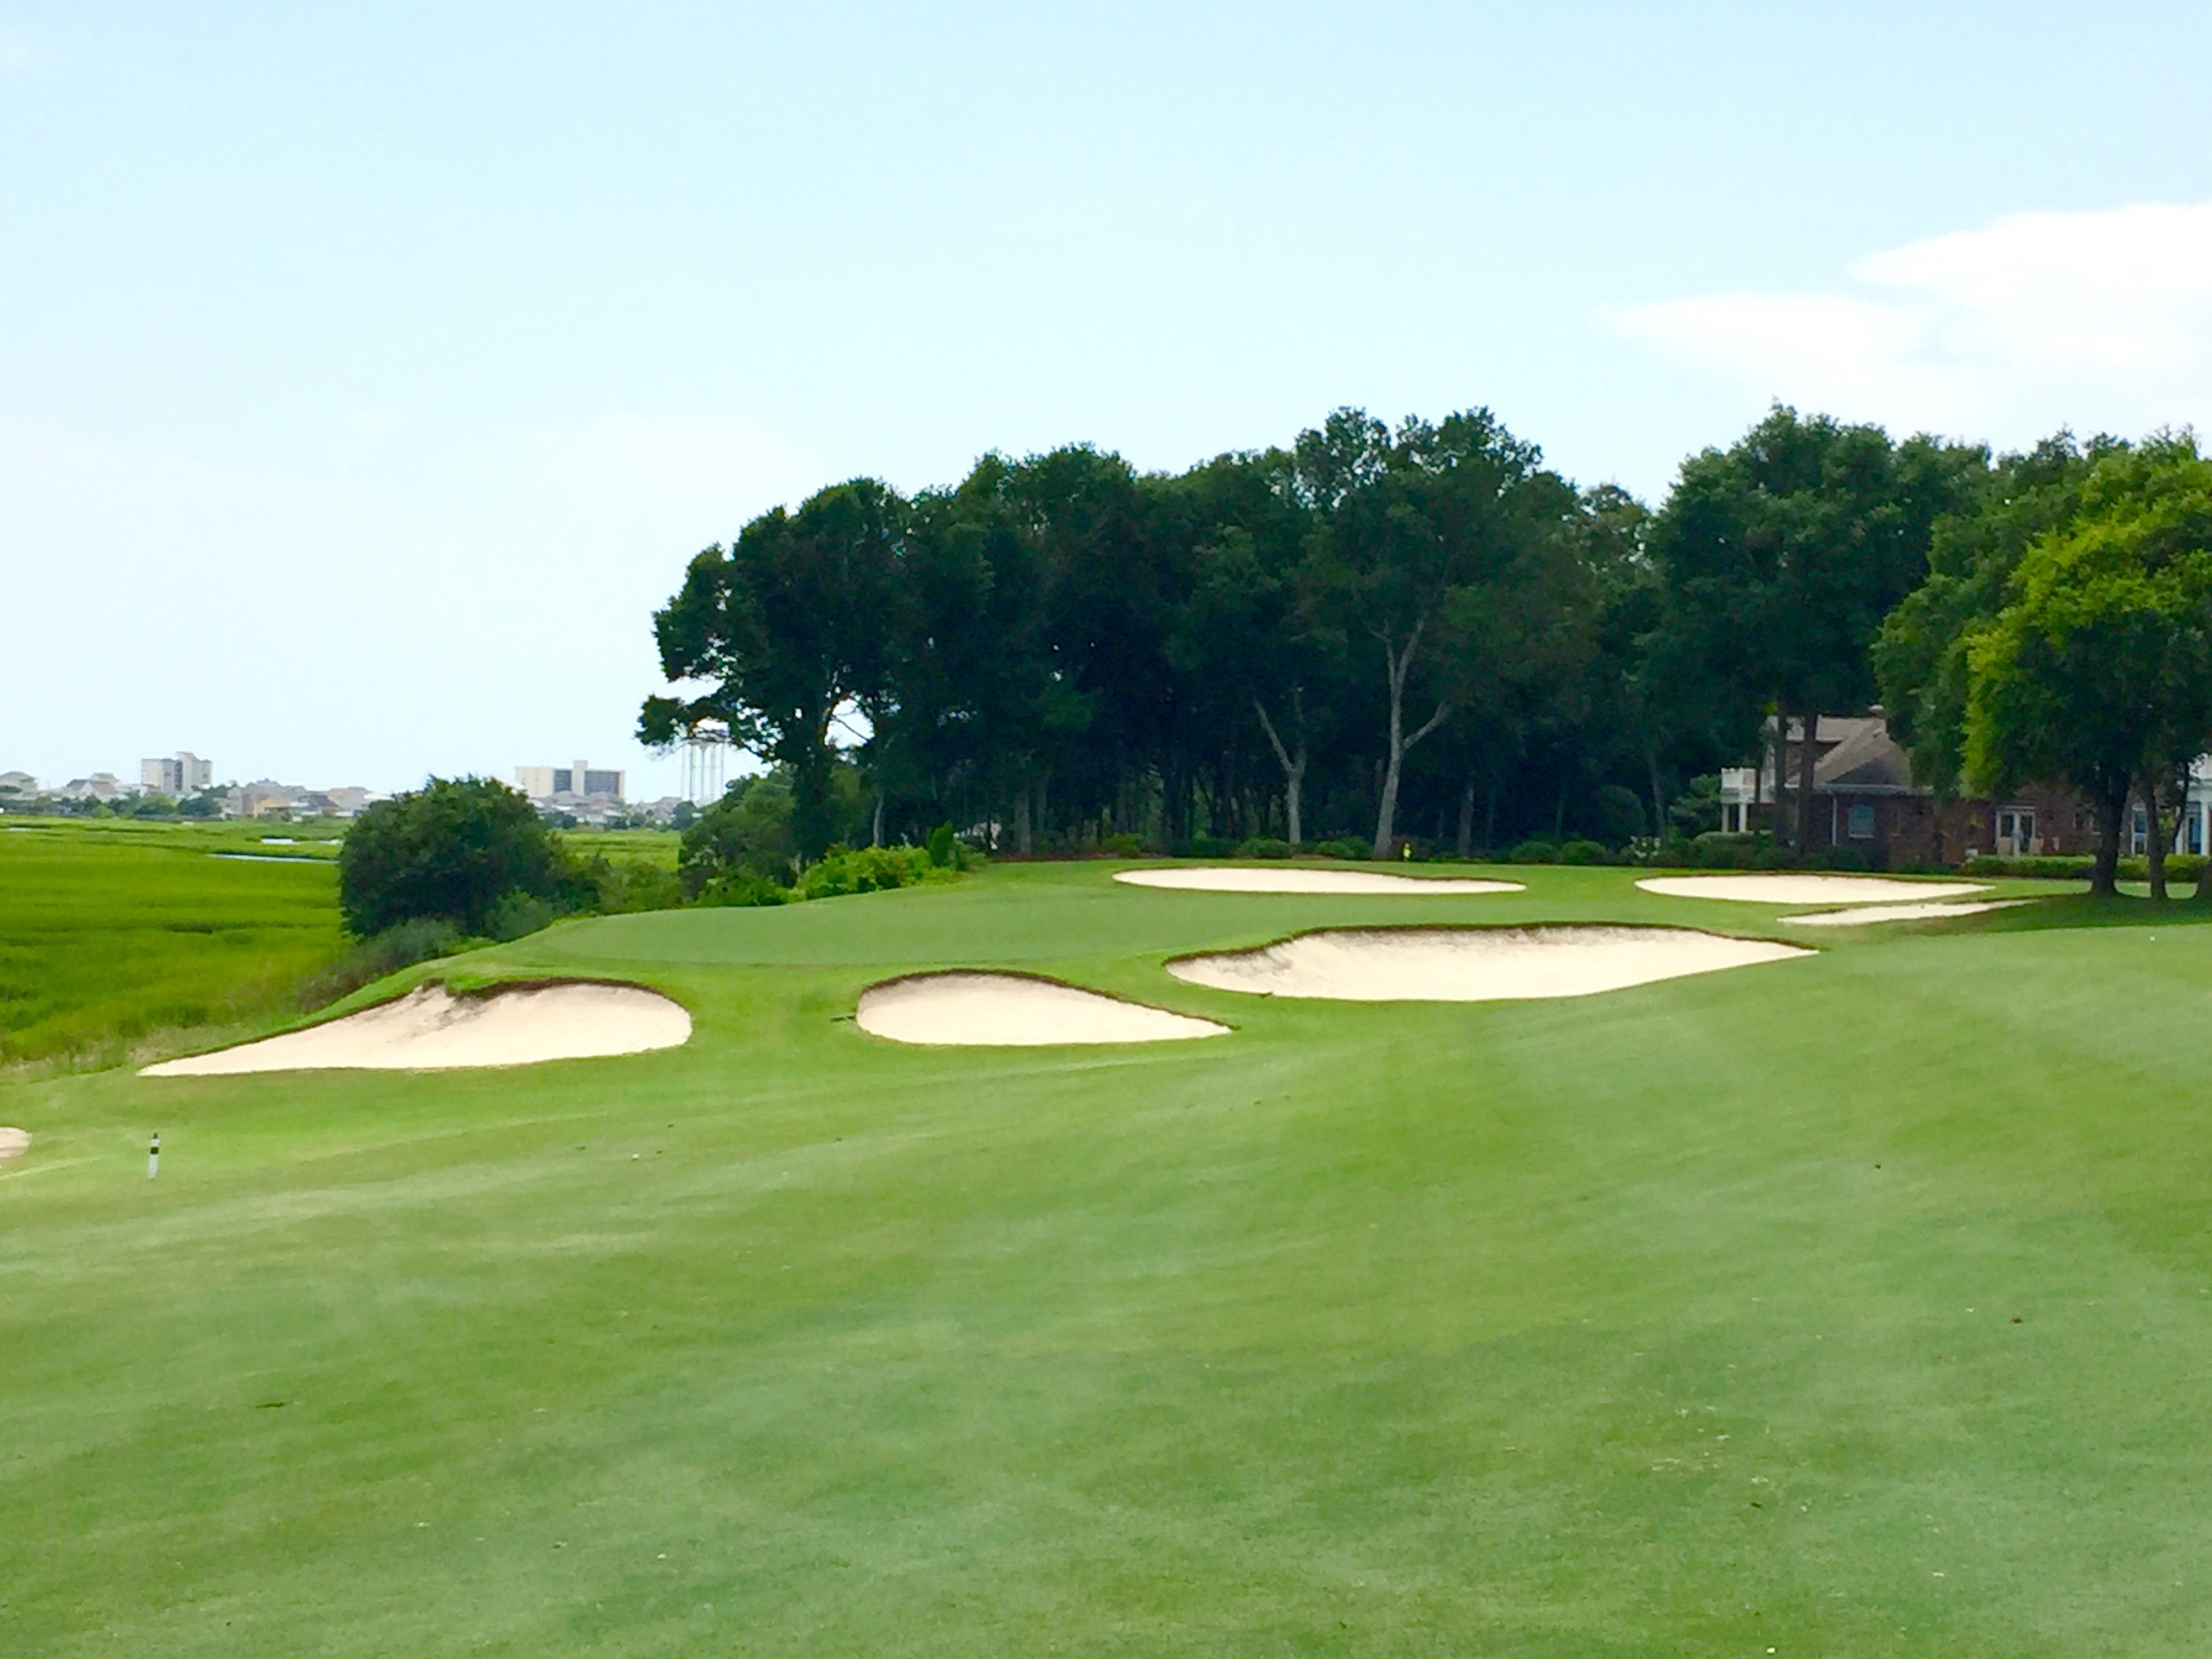 Tidewater Golf & Country Club in Little River, SC, is one of the top 30 courses you can play in South Carolina according to that state's golf panel.Located just north of Myrtle Beach, the course is surrounded by homes and water.